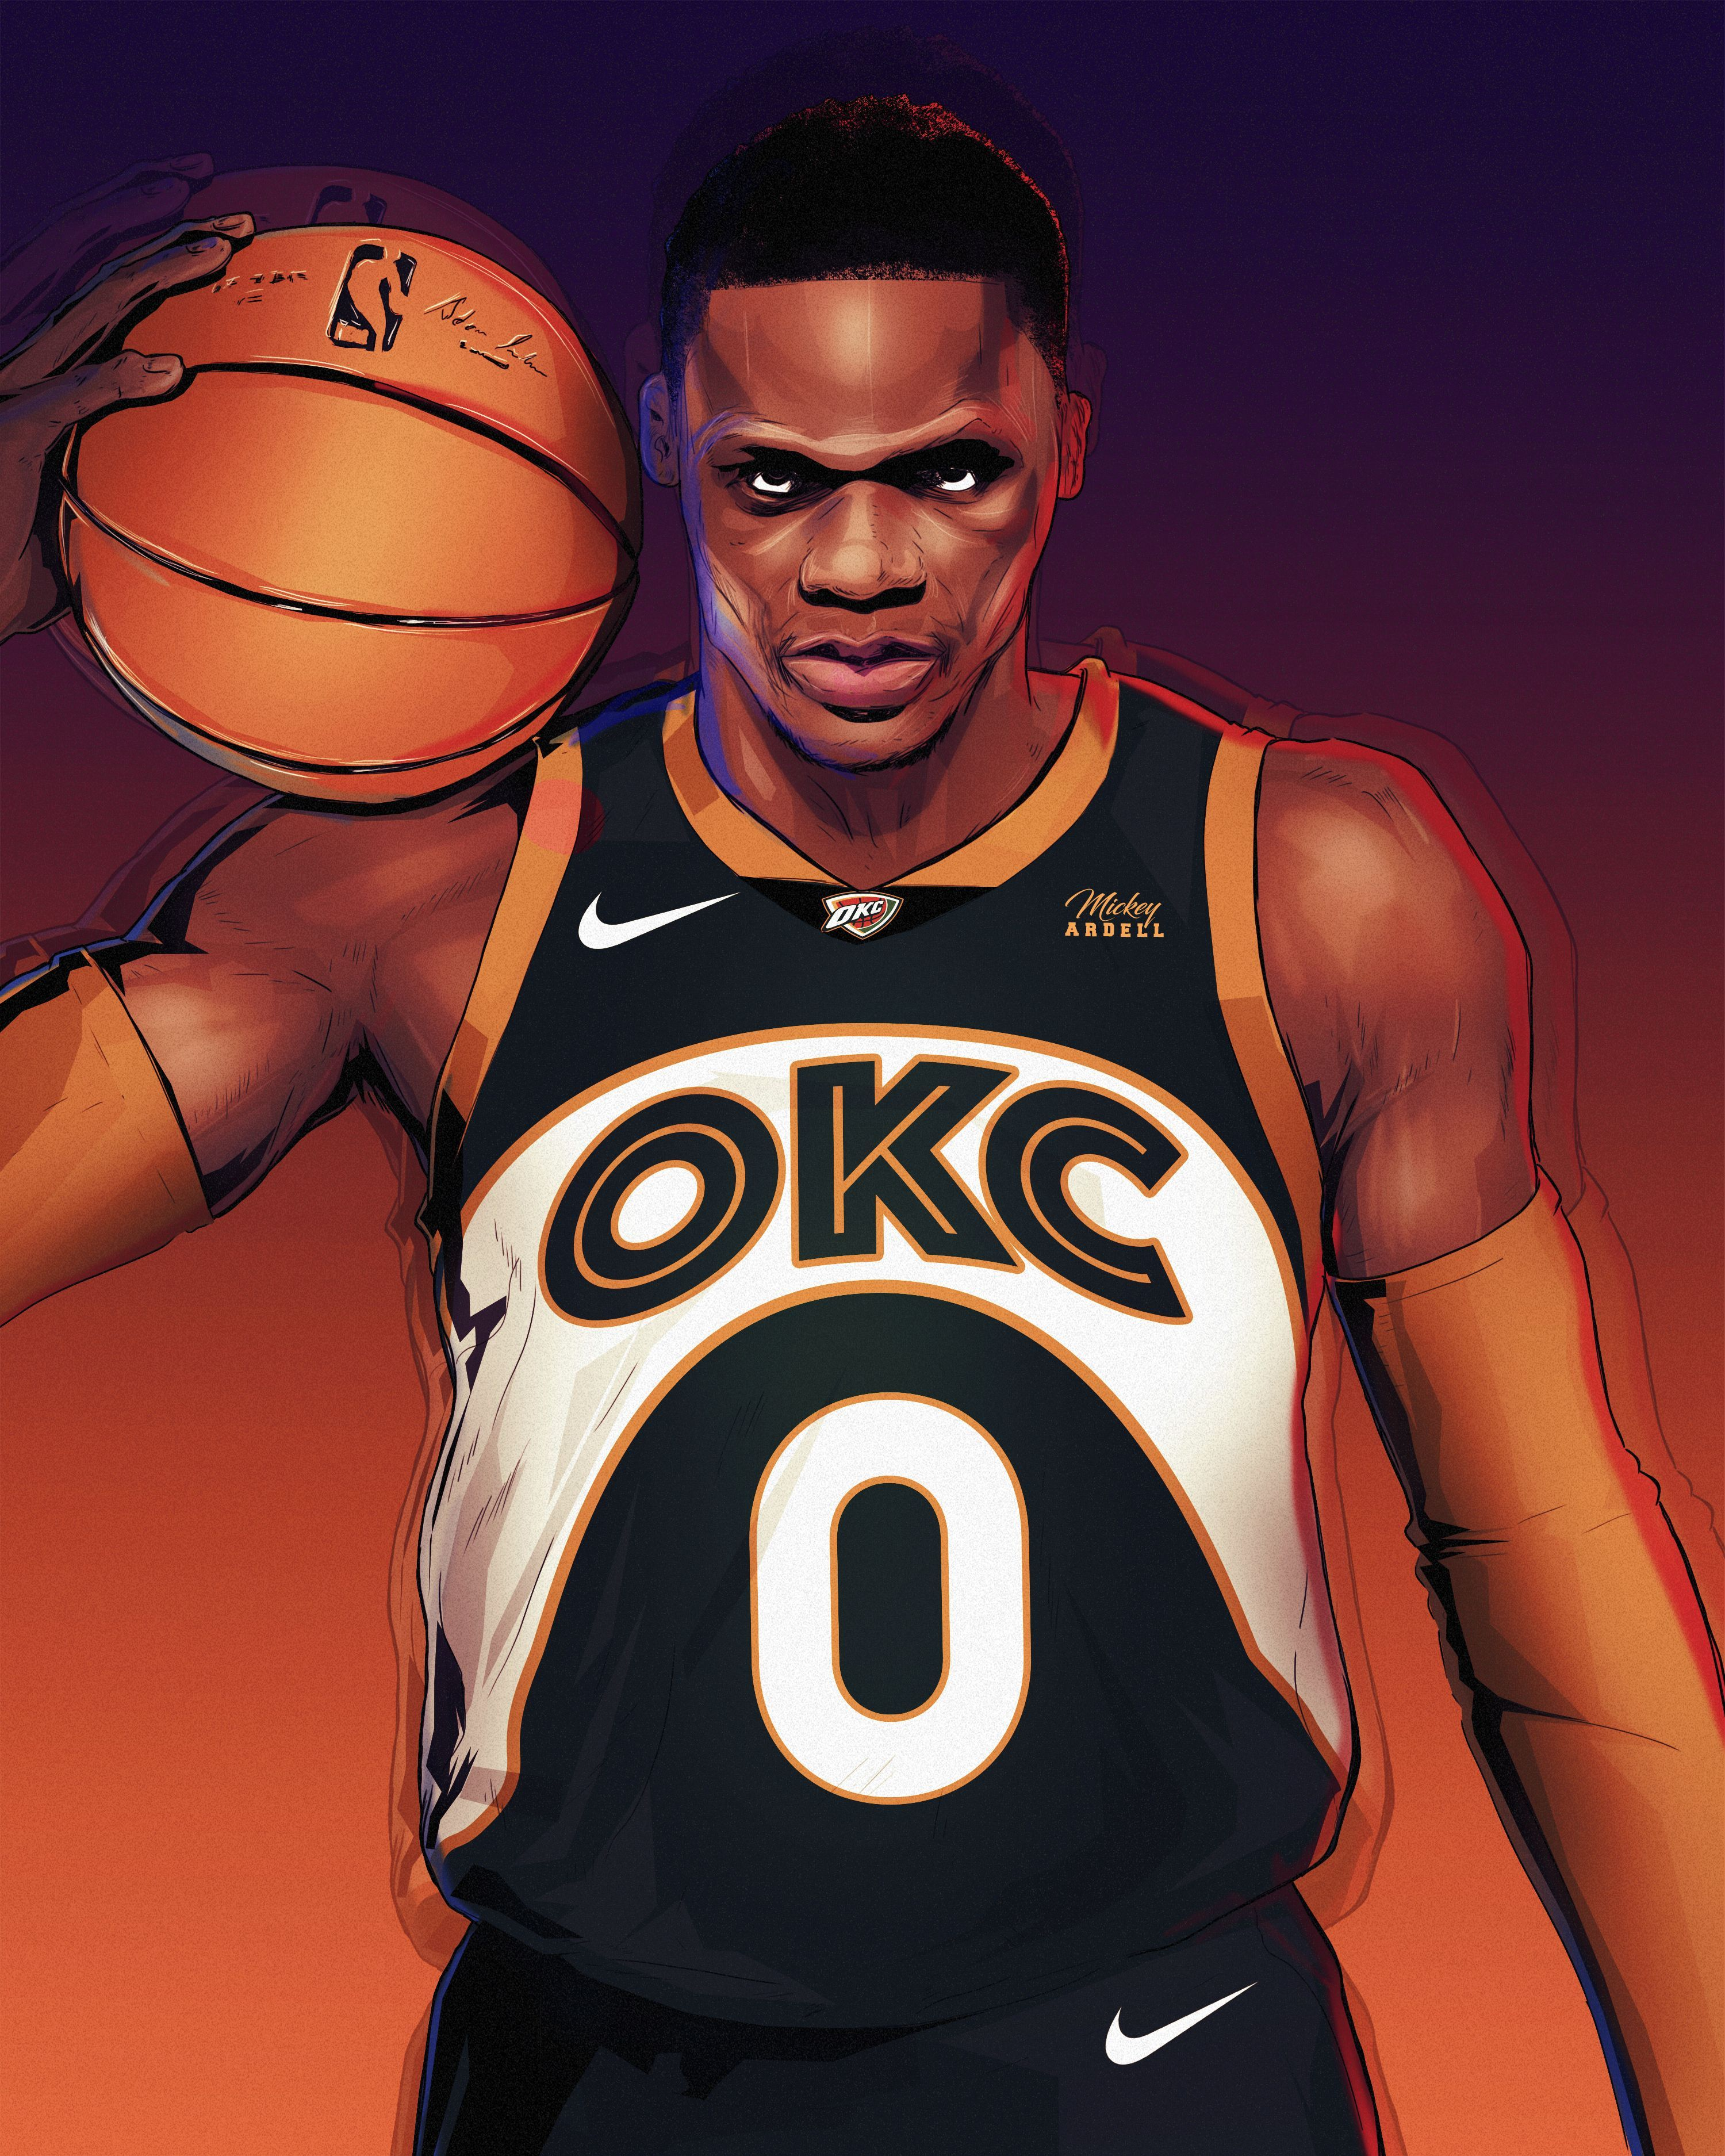 Sonics OKC Jersey Concept Russell Westbrook NBA Art #wmcskills #basketball #NBA basketball nba youngboy